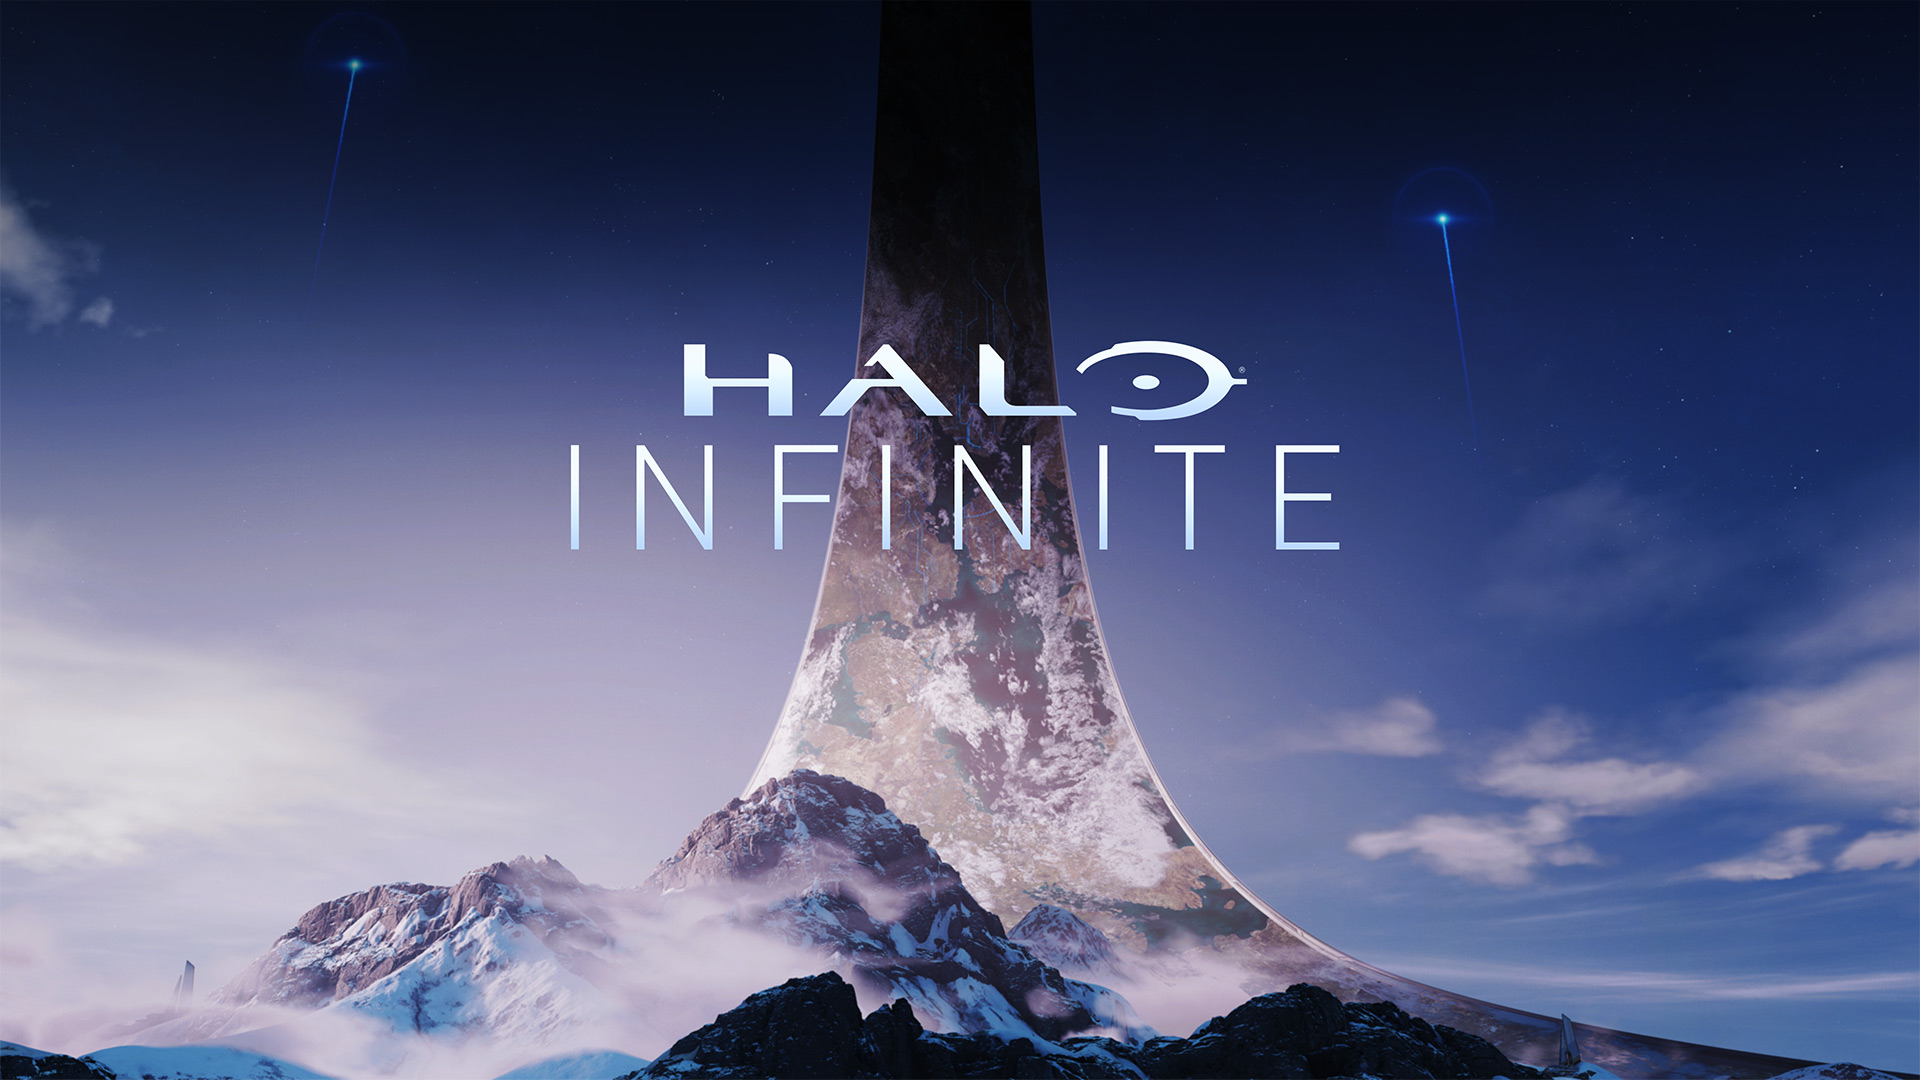 Art Halo Infinite